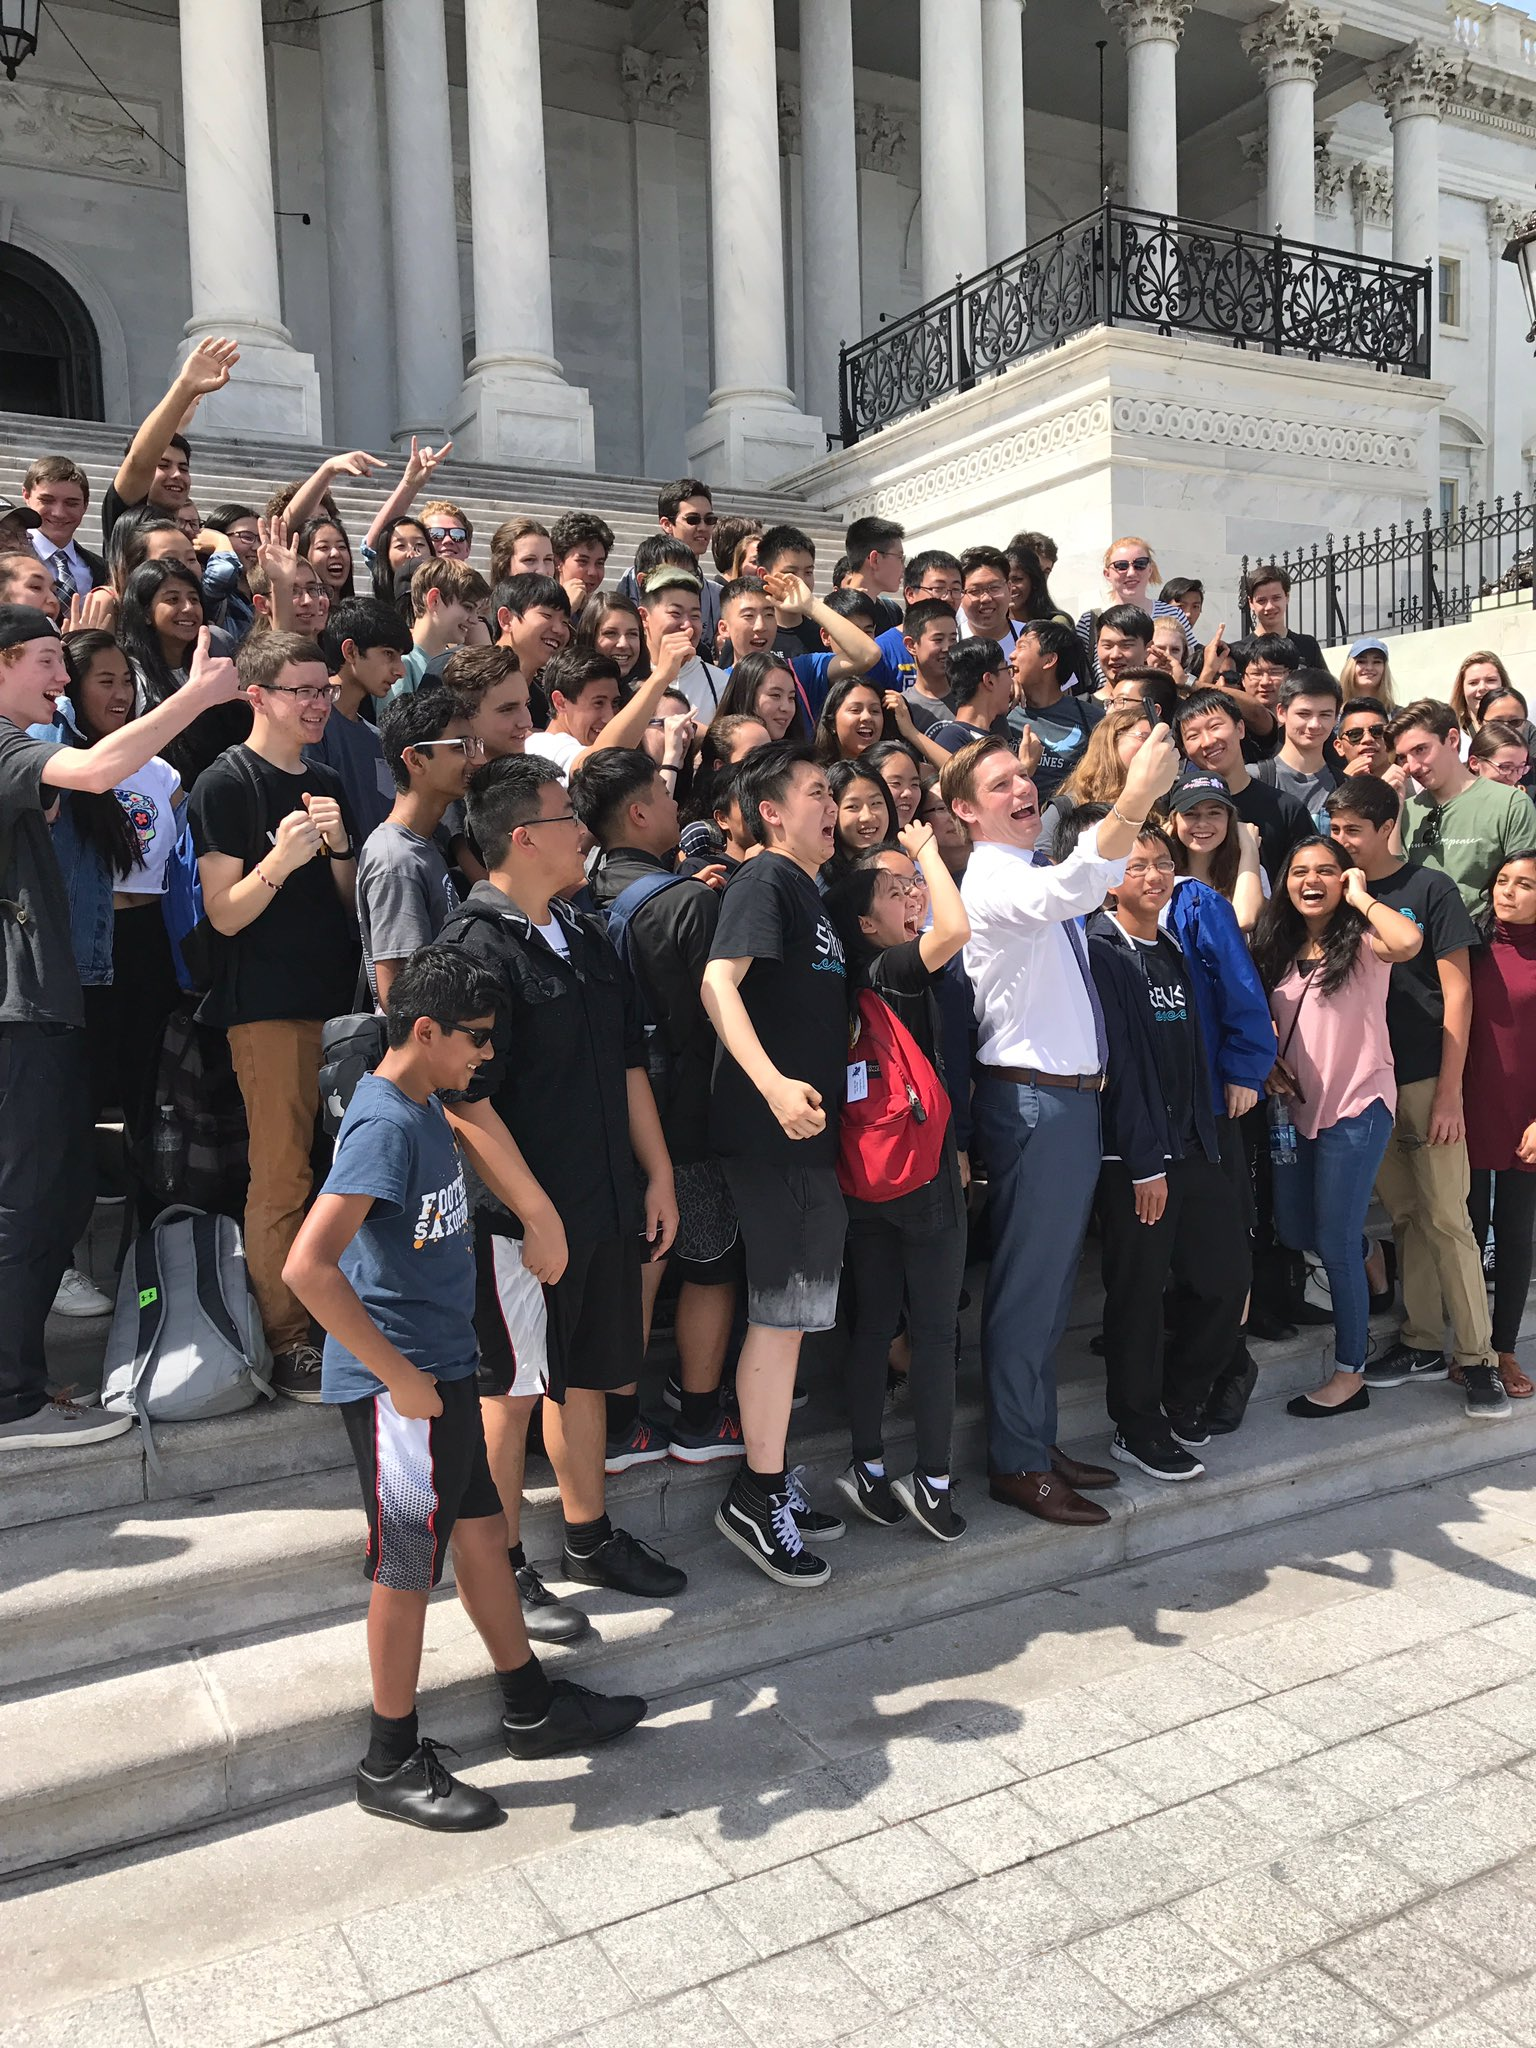 Best part of my week? Hanging with the @foothillfalcons on @uscapitol steps! They were kind to this @DHSGaels alum! https://t.co/xTgiMxy2P1